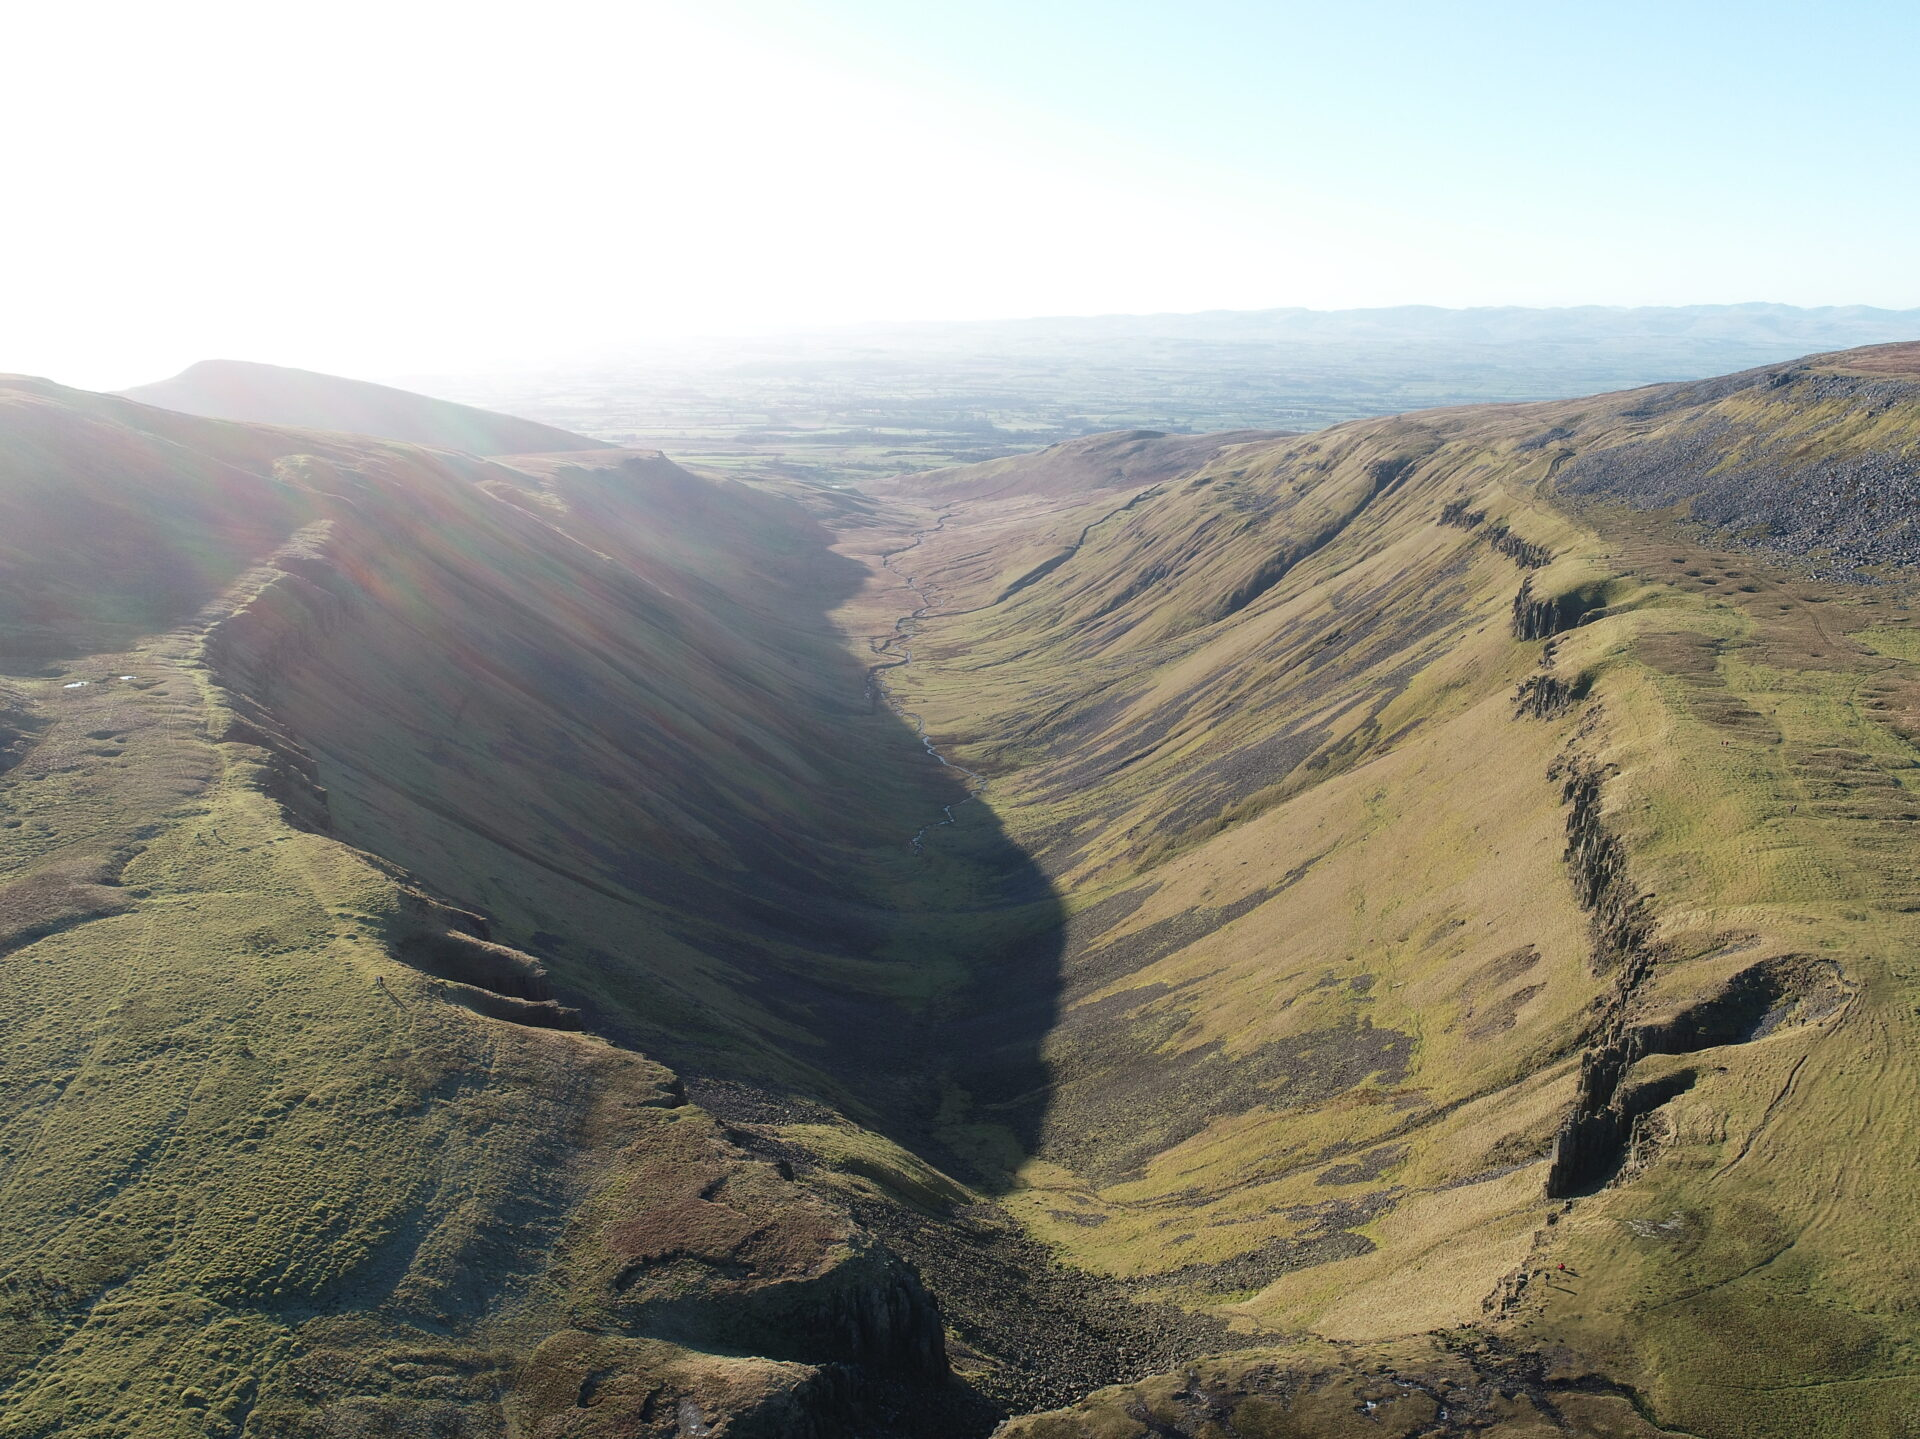 High Cup Nick in Cumbria from the air